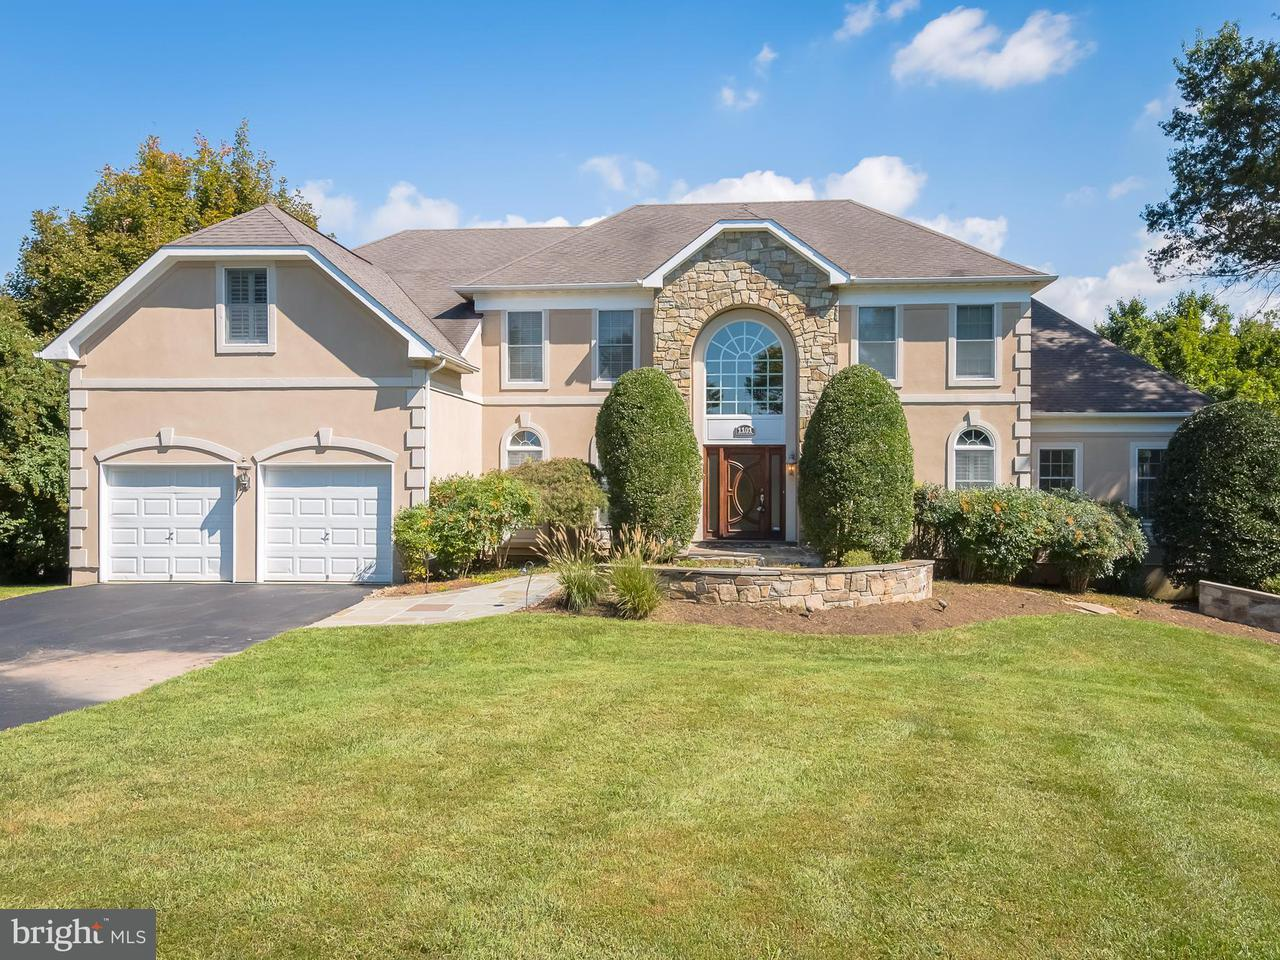 Single Family Home for Sale at 1101 MOUNTAIN HOPE Court 1101 MOUNTAIN HOPE Court Great Falls, Virginia 22066 United States